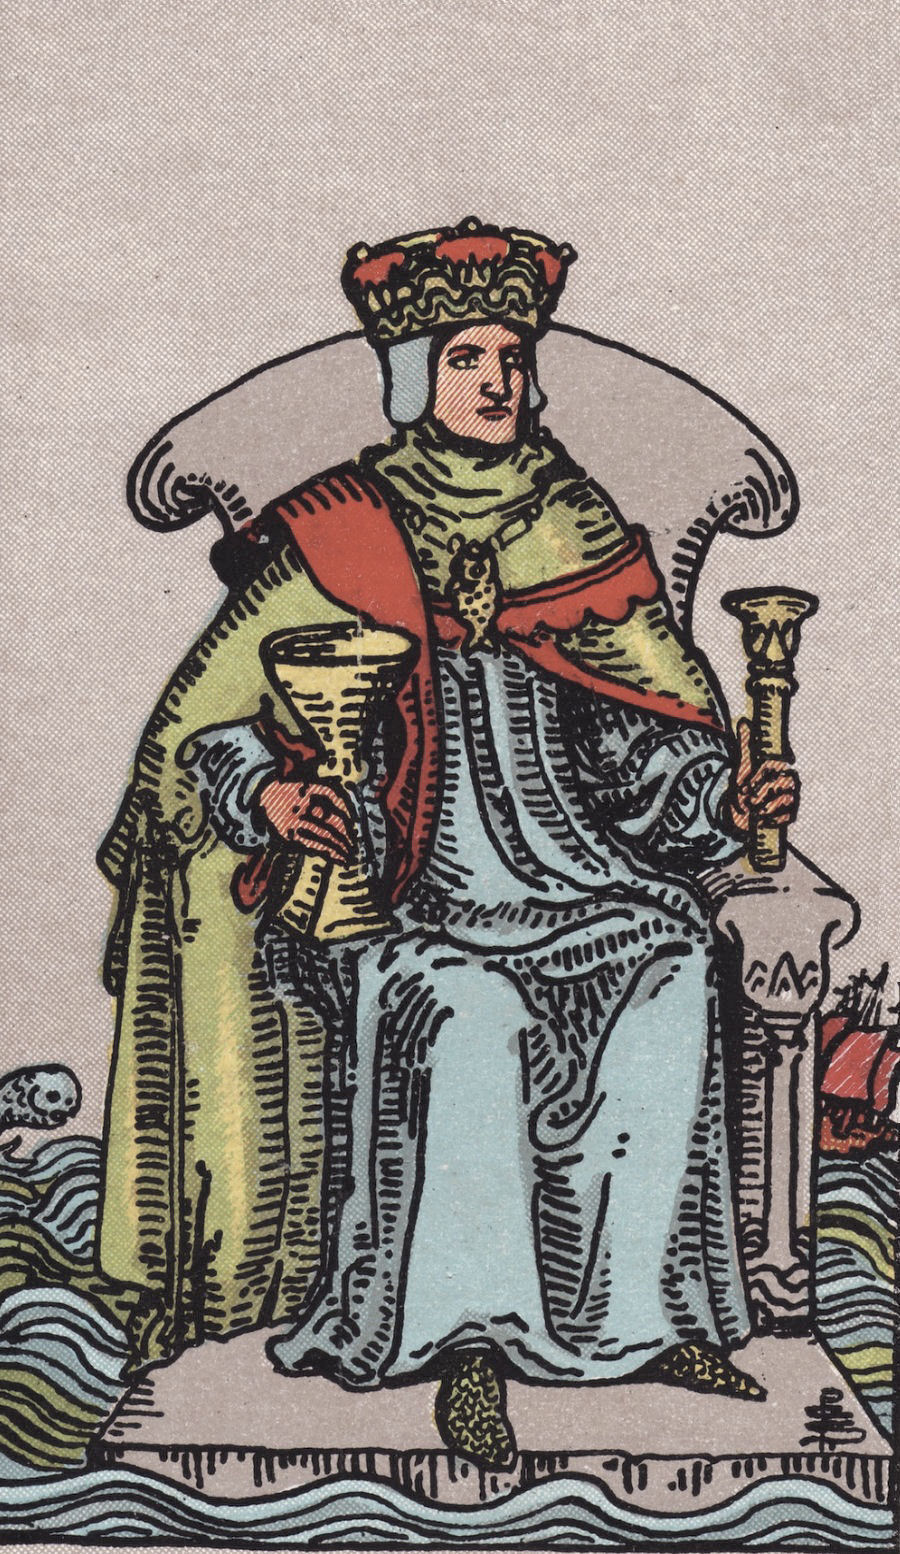 Rider Waite Smith King of Swords Tarot Card Meaning